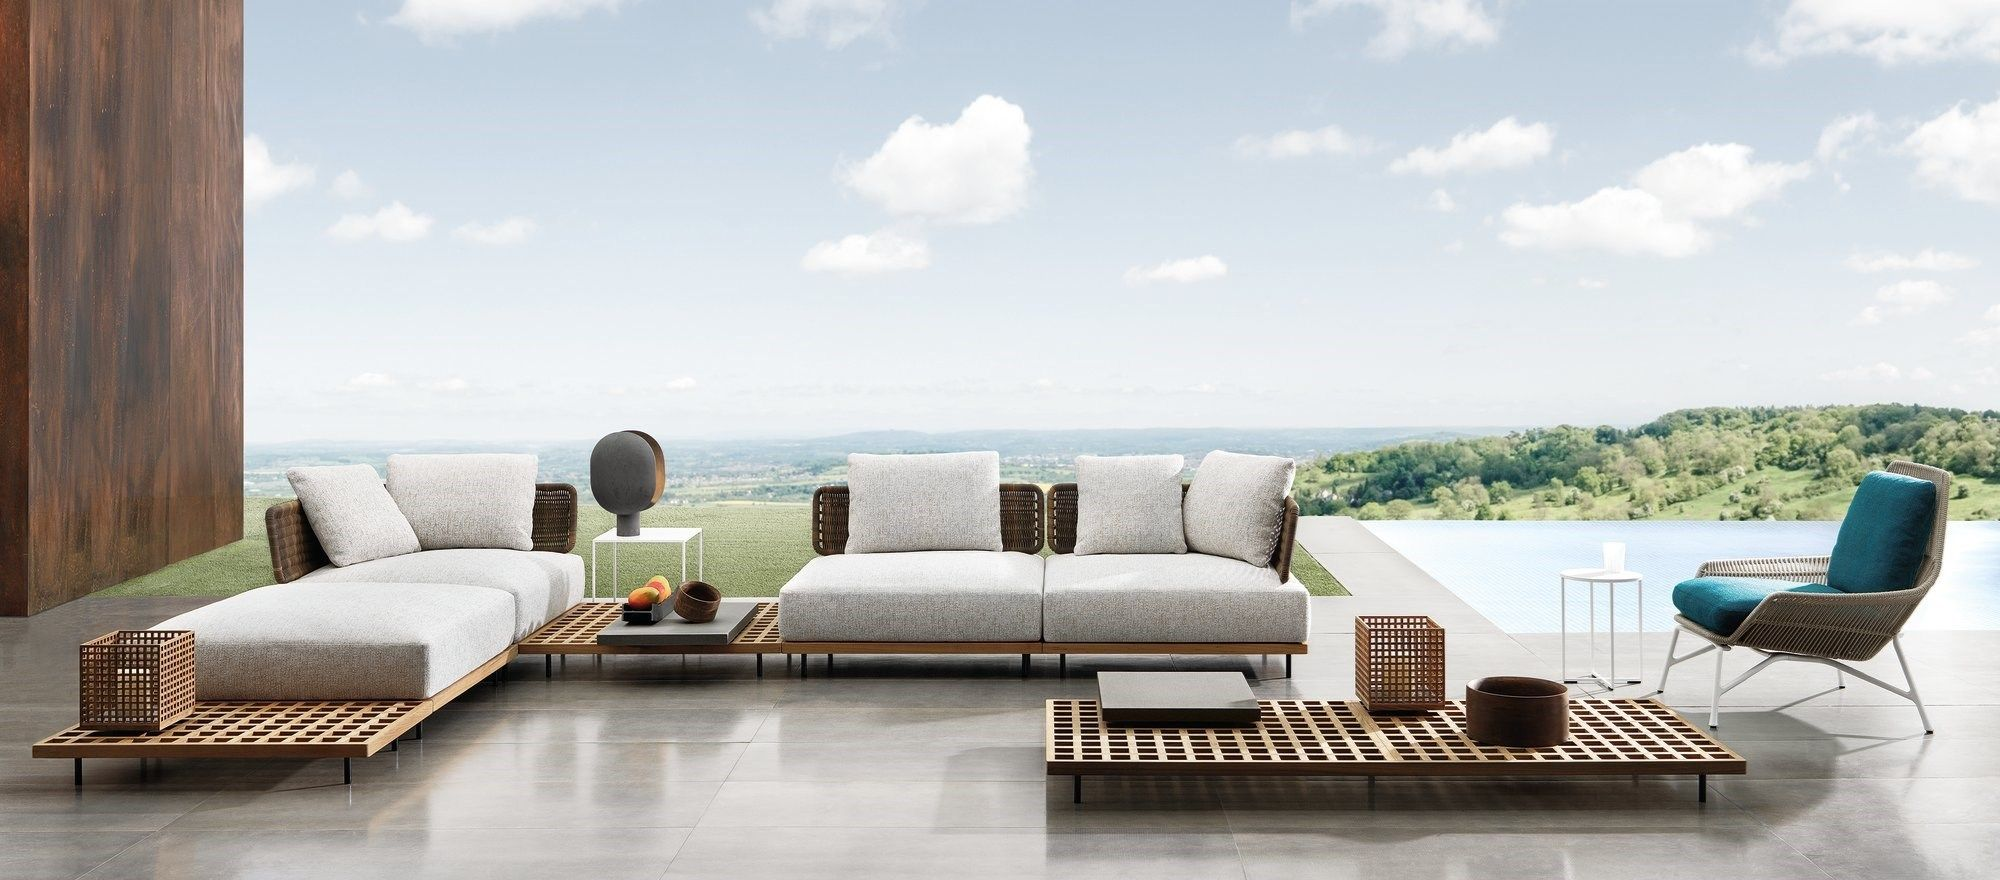 Brazilian architect marcio kogan developed quadrado the new outdoor seatings collection for minotti inspired by the japanese metabolist architecture of the